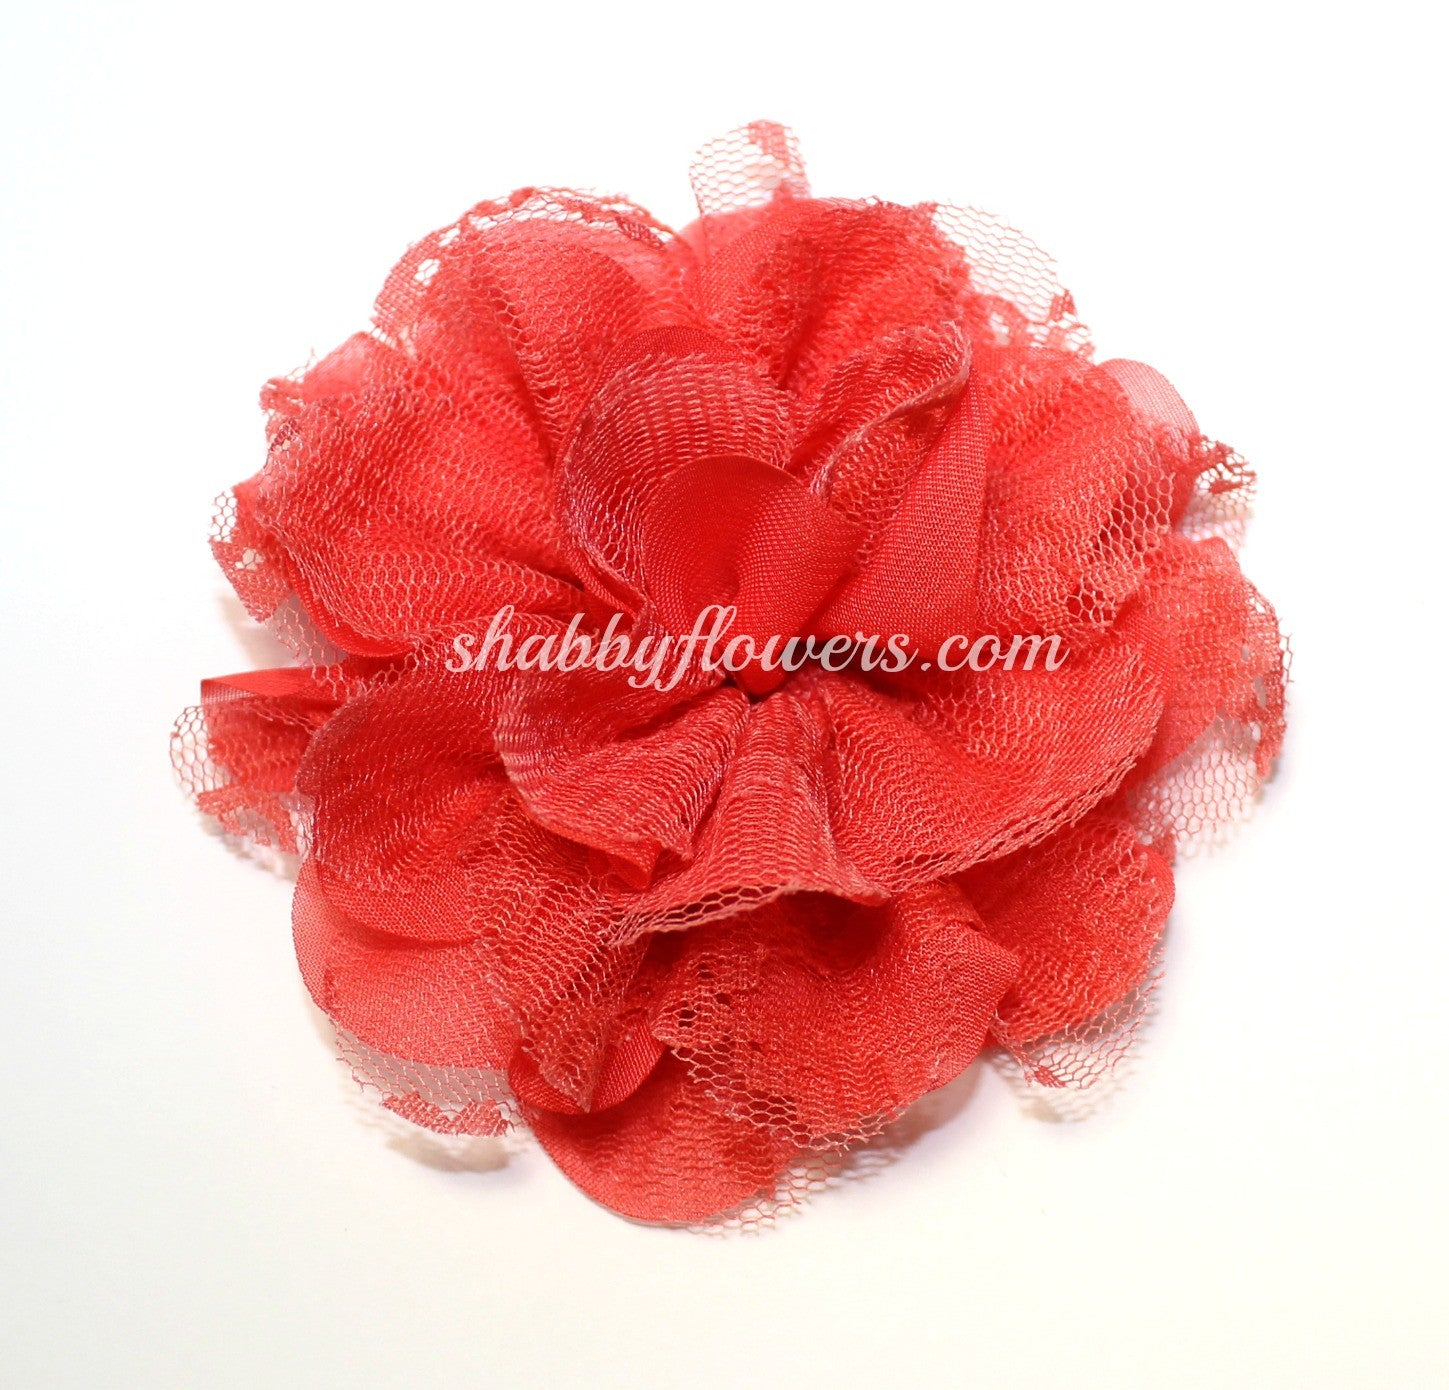 Chiffon and Lace Flower - Coral - shabbyflowers.com